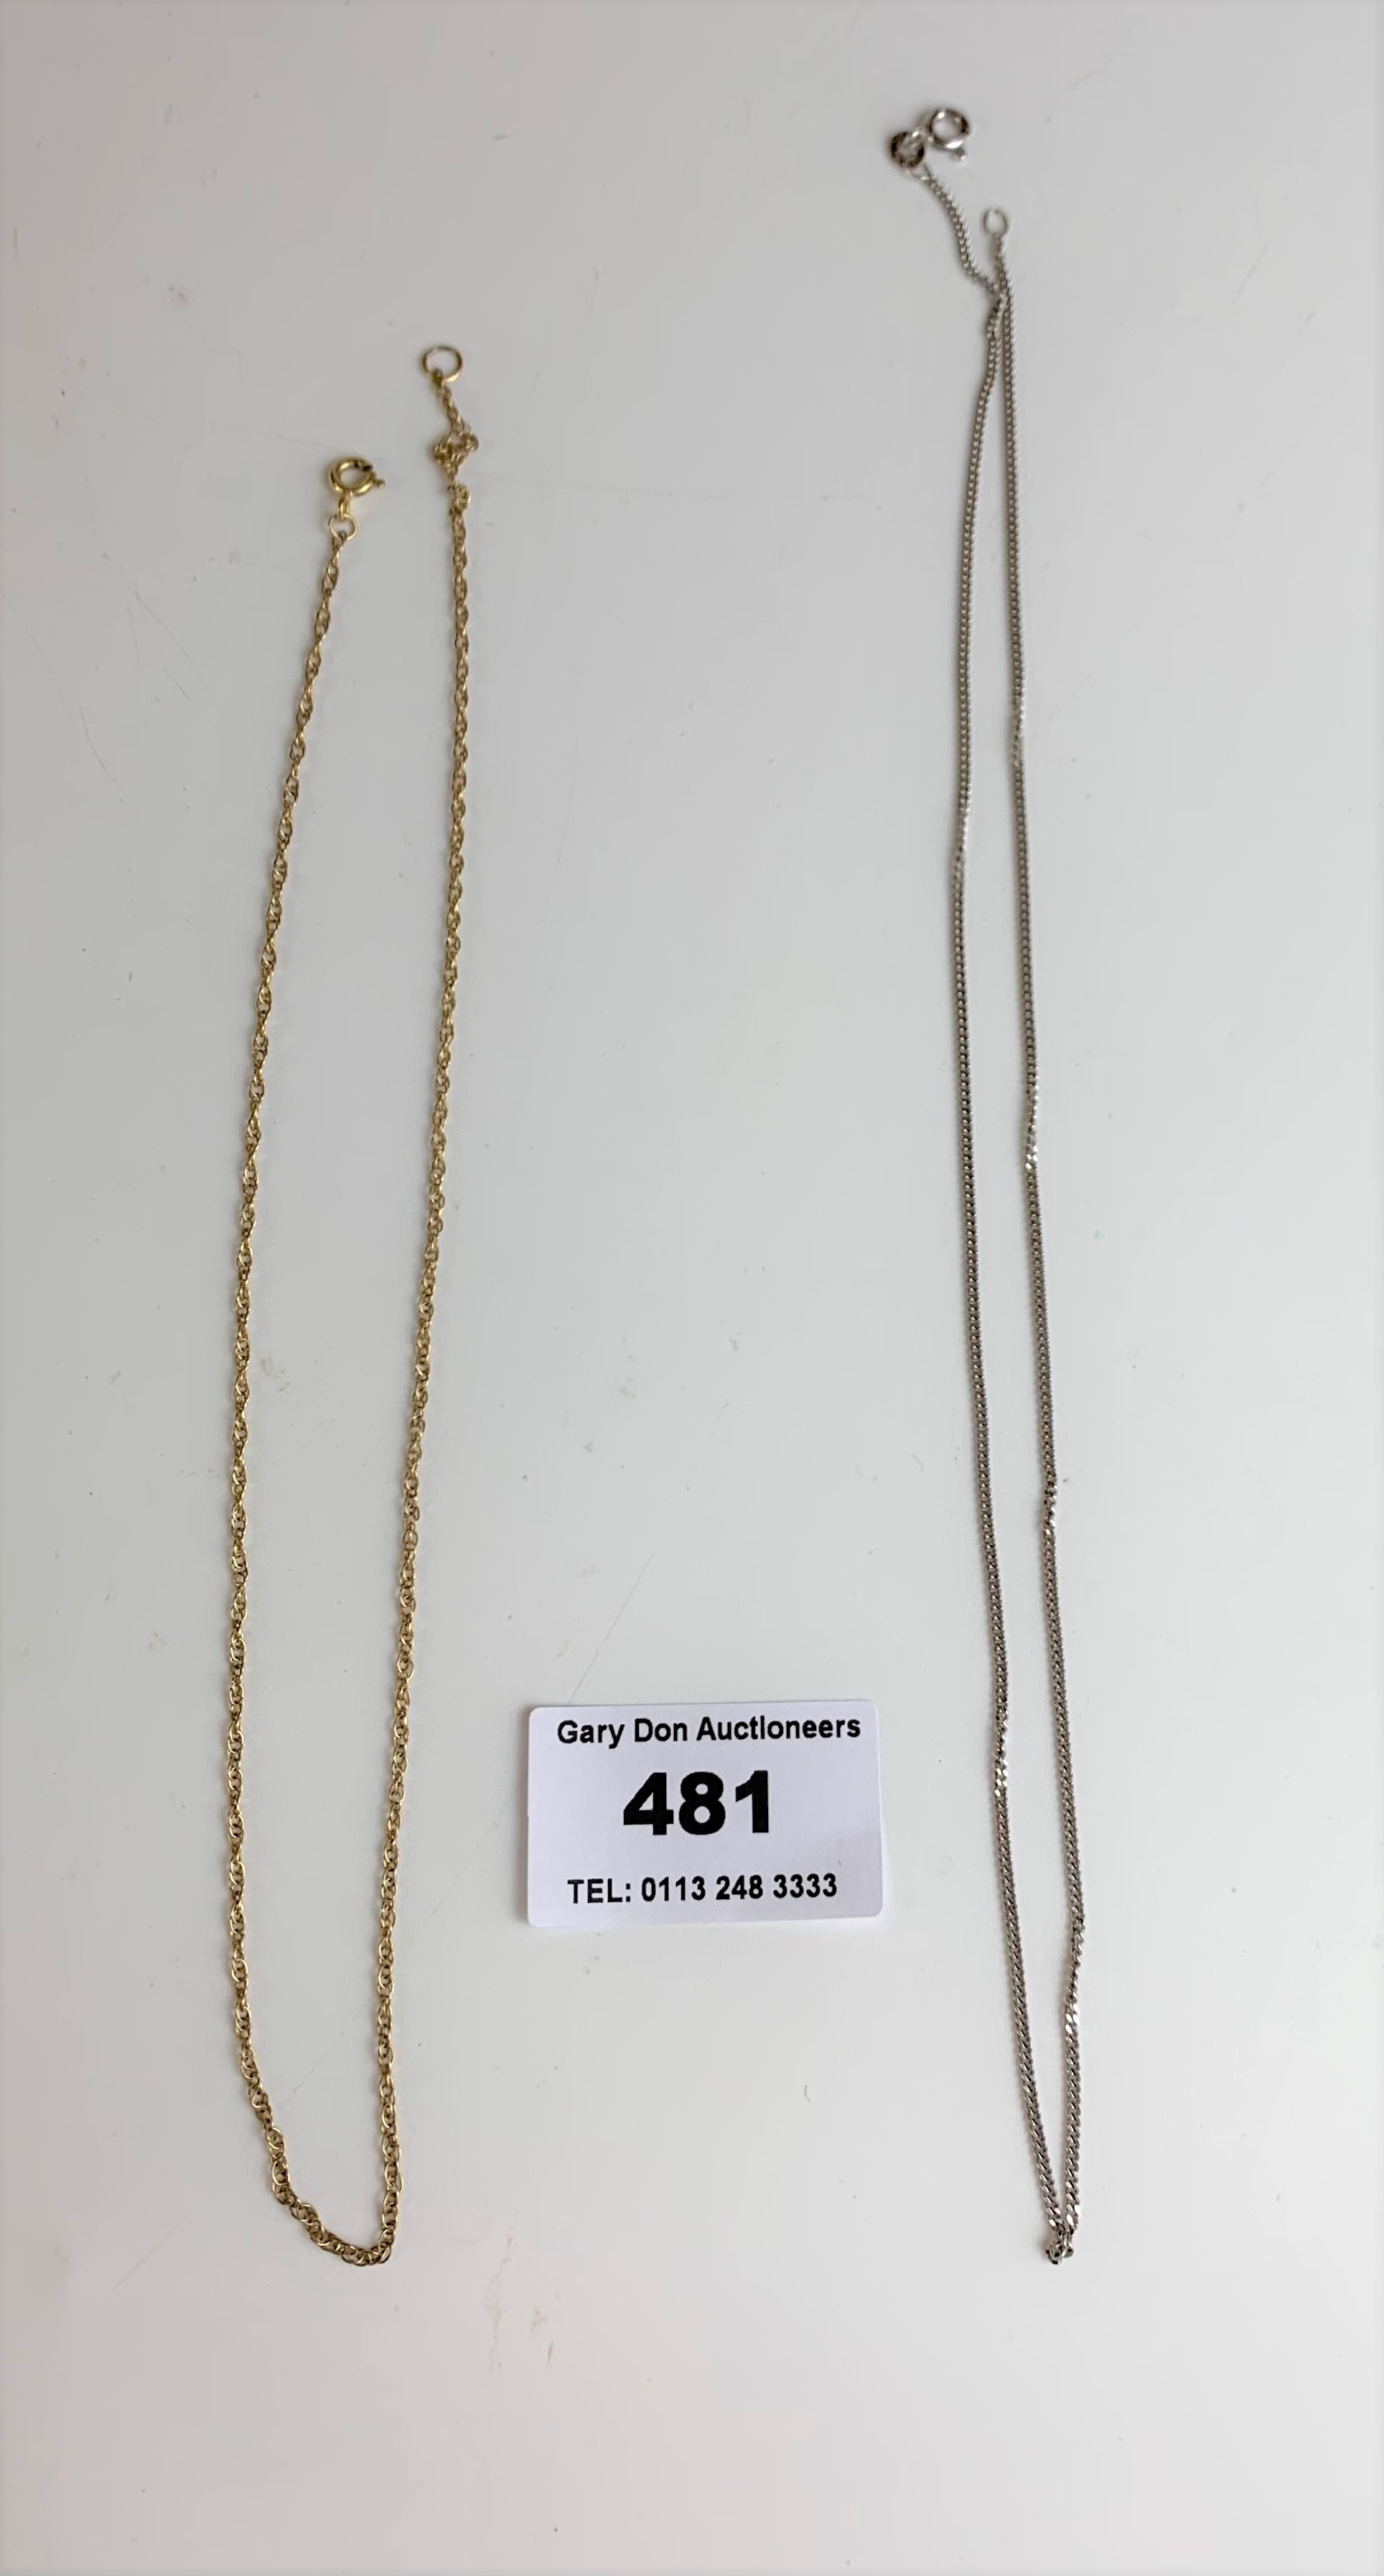 """9k white gold necklace, length 15.5"""", w: 3.1 gms - Image 4 of 4"""